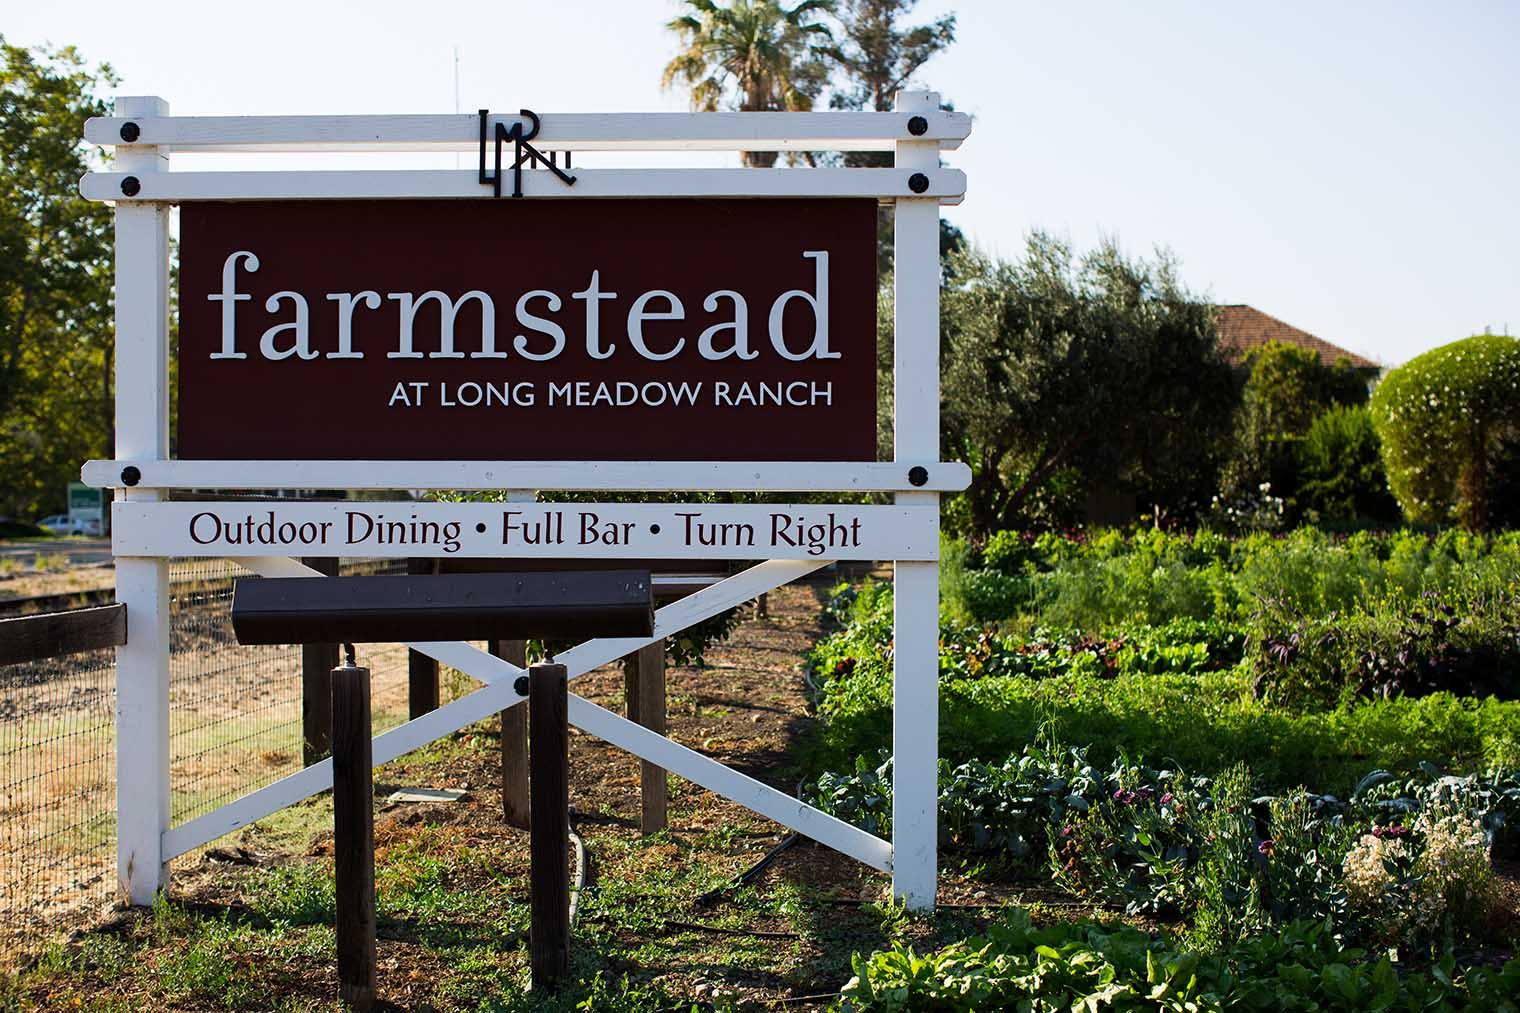 farmstead at long meadow ranch sign